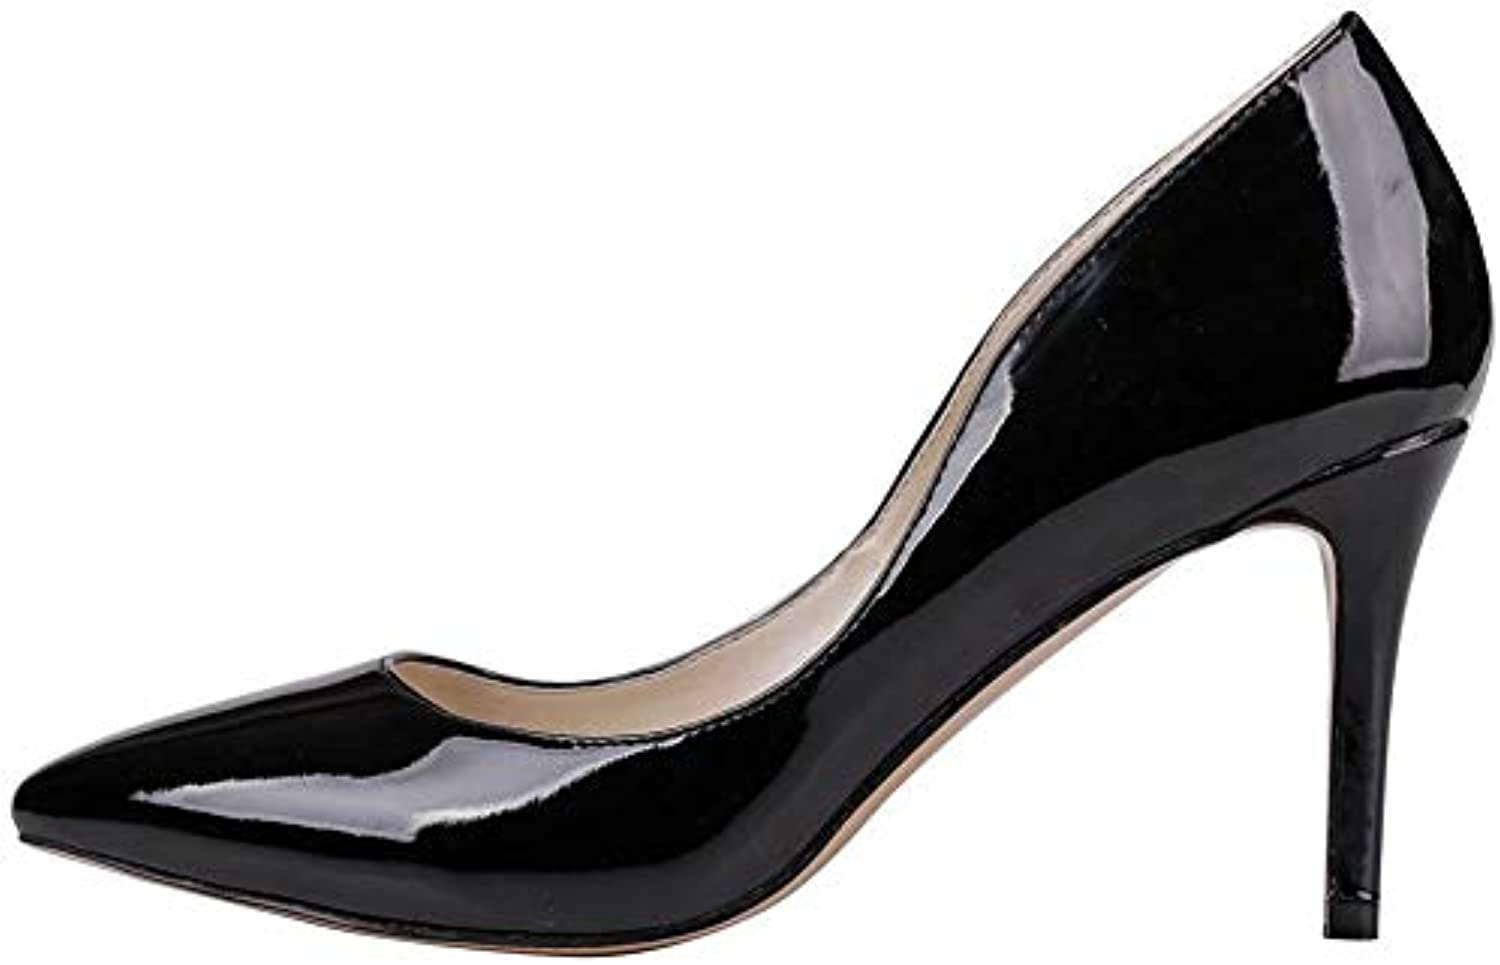 DoraTasia ,  s Compensées Femme - EUB07GB3N1DHParent Noir - 2 Black(Patent Leather), 36.5 EUB07GB3N1DHParent - 77e252